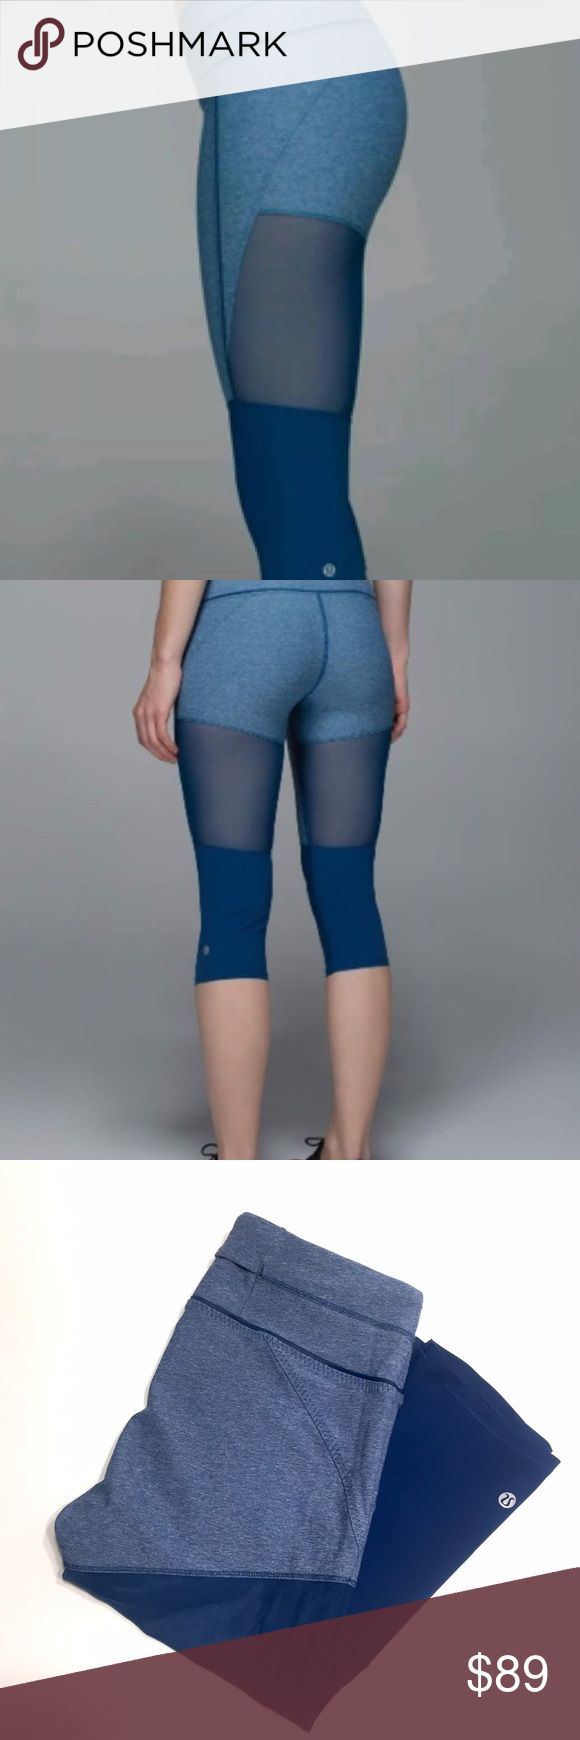 Training Tough Mesh Crop • Lululemon Details:  • Crop style  • Two hidden pockets • Mesh for design and ventilation • Excellent condition  • First two photos are stock images   Price negotiable. Don't forget to bundle and save. lululemon athletica Pants Leggings